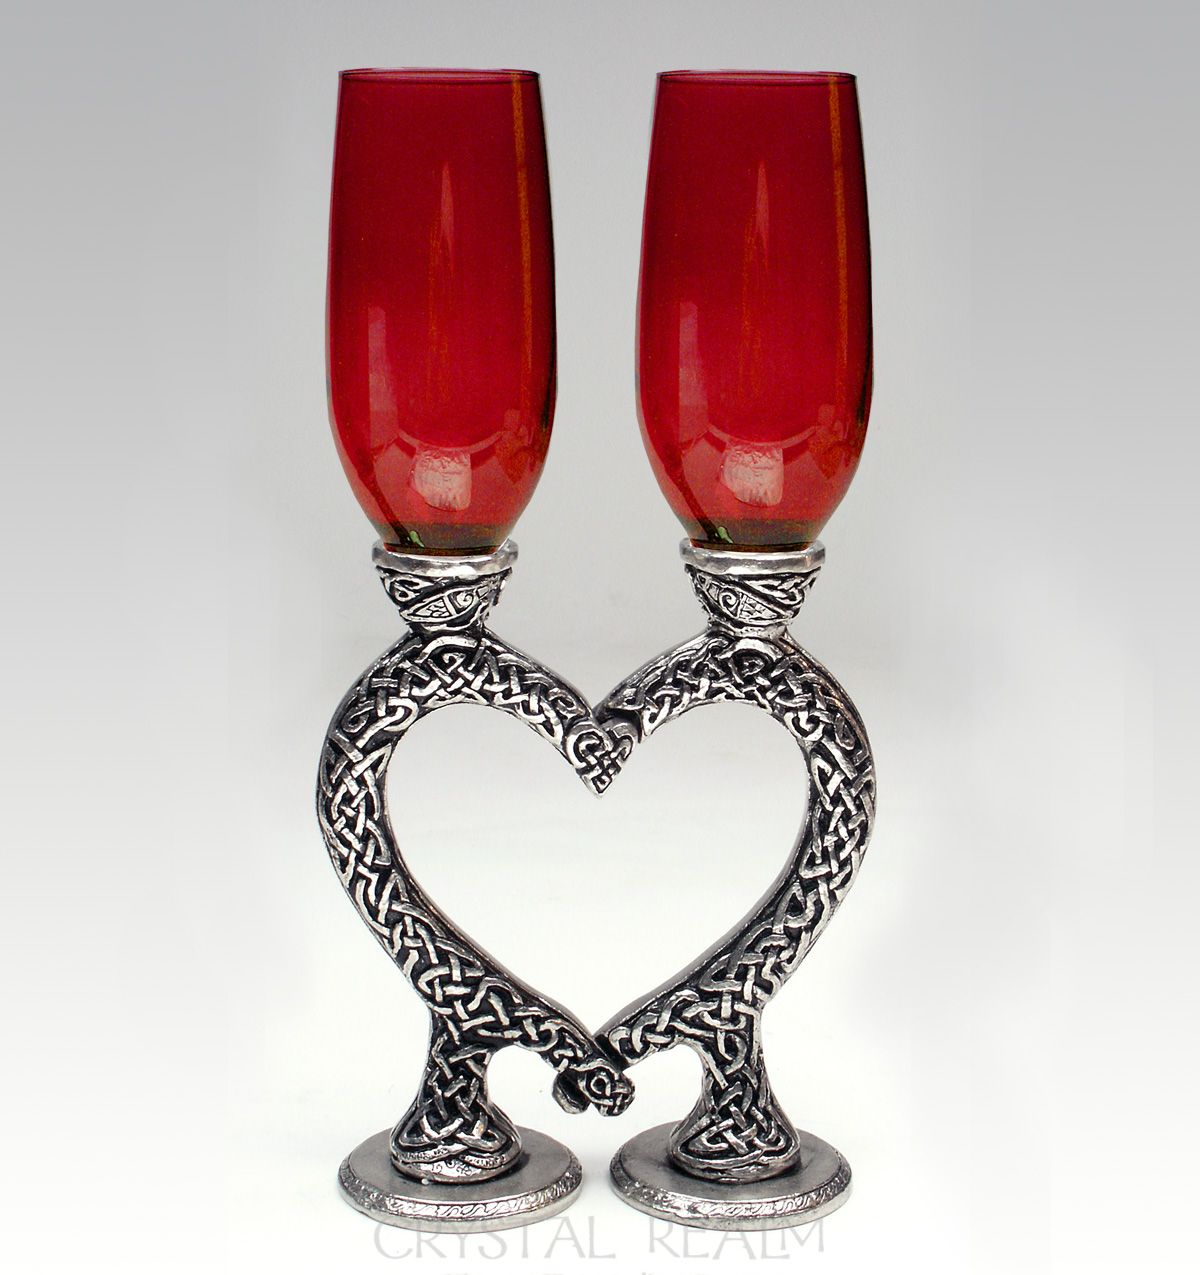 red toasting glasses with celtic heart stems